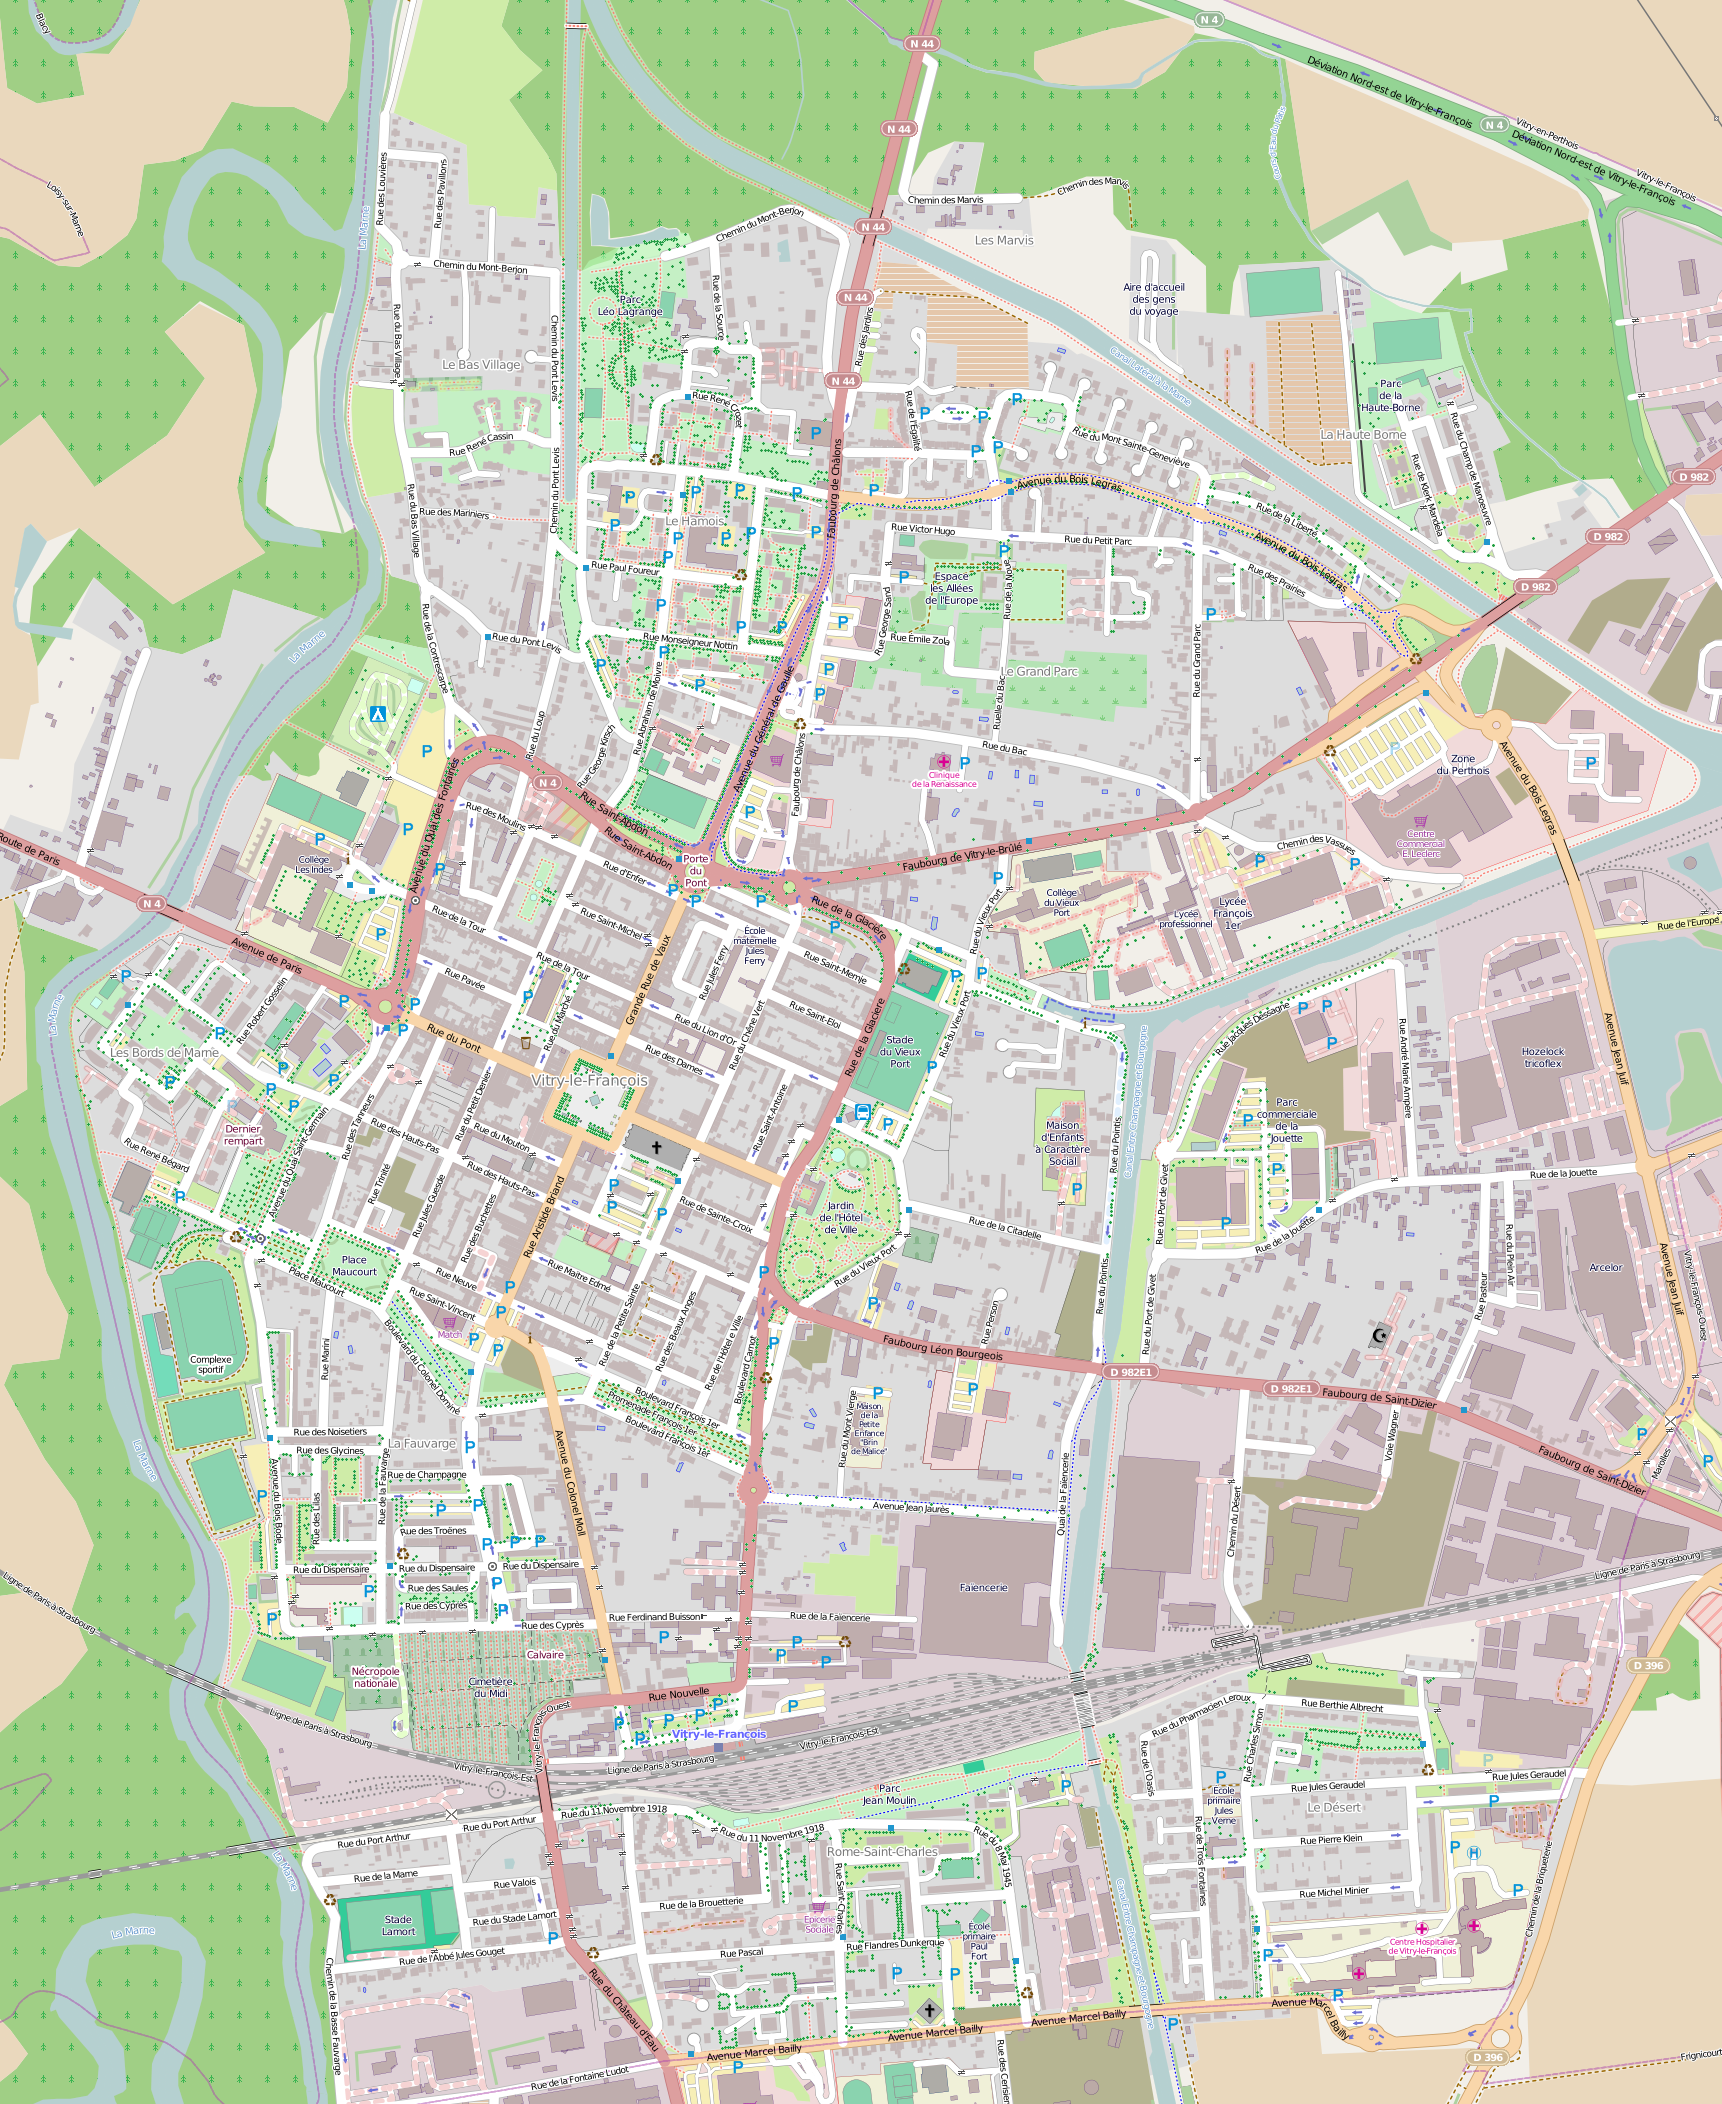 file plan de vitry le fran ois osm png wikimedia commons